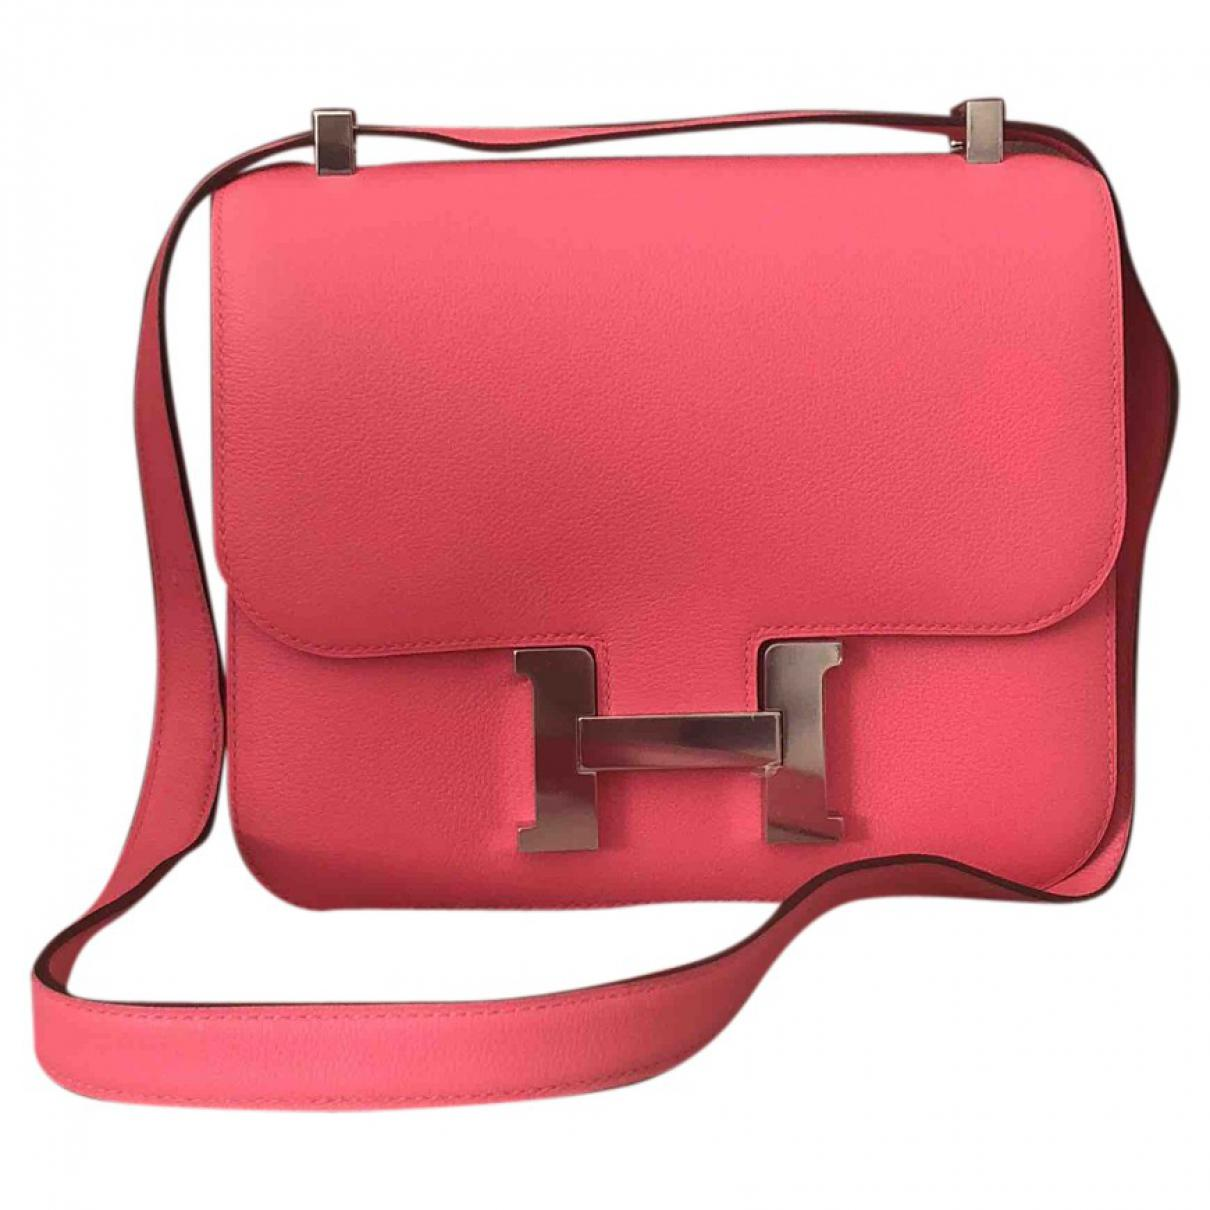 ae46dcb663 ... coupon code for lyst hermès pre owned constance leather crossbody bag  in pink 012ee 8c8f7